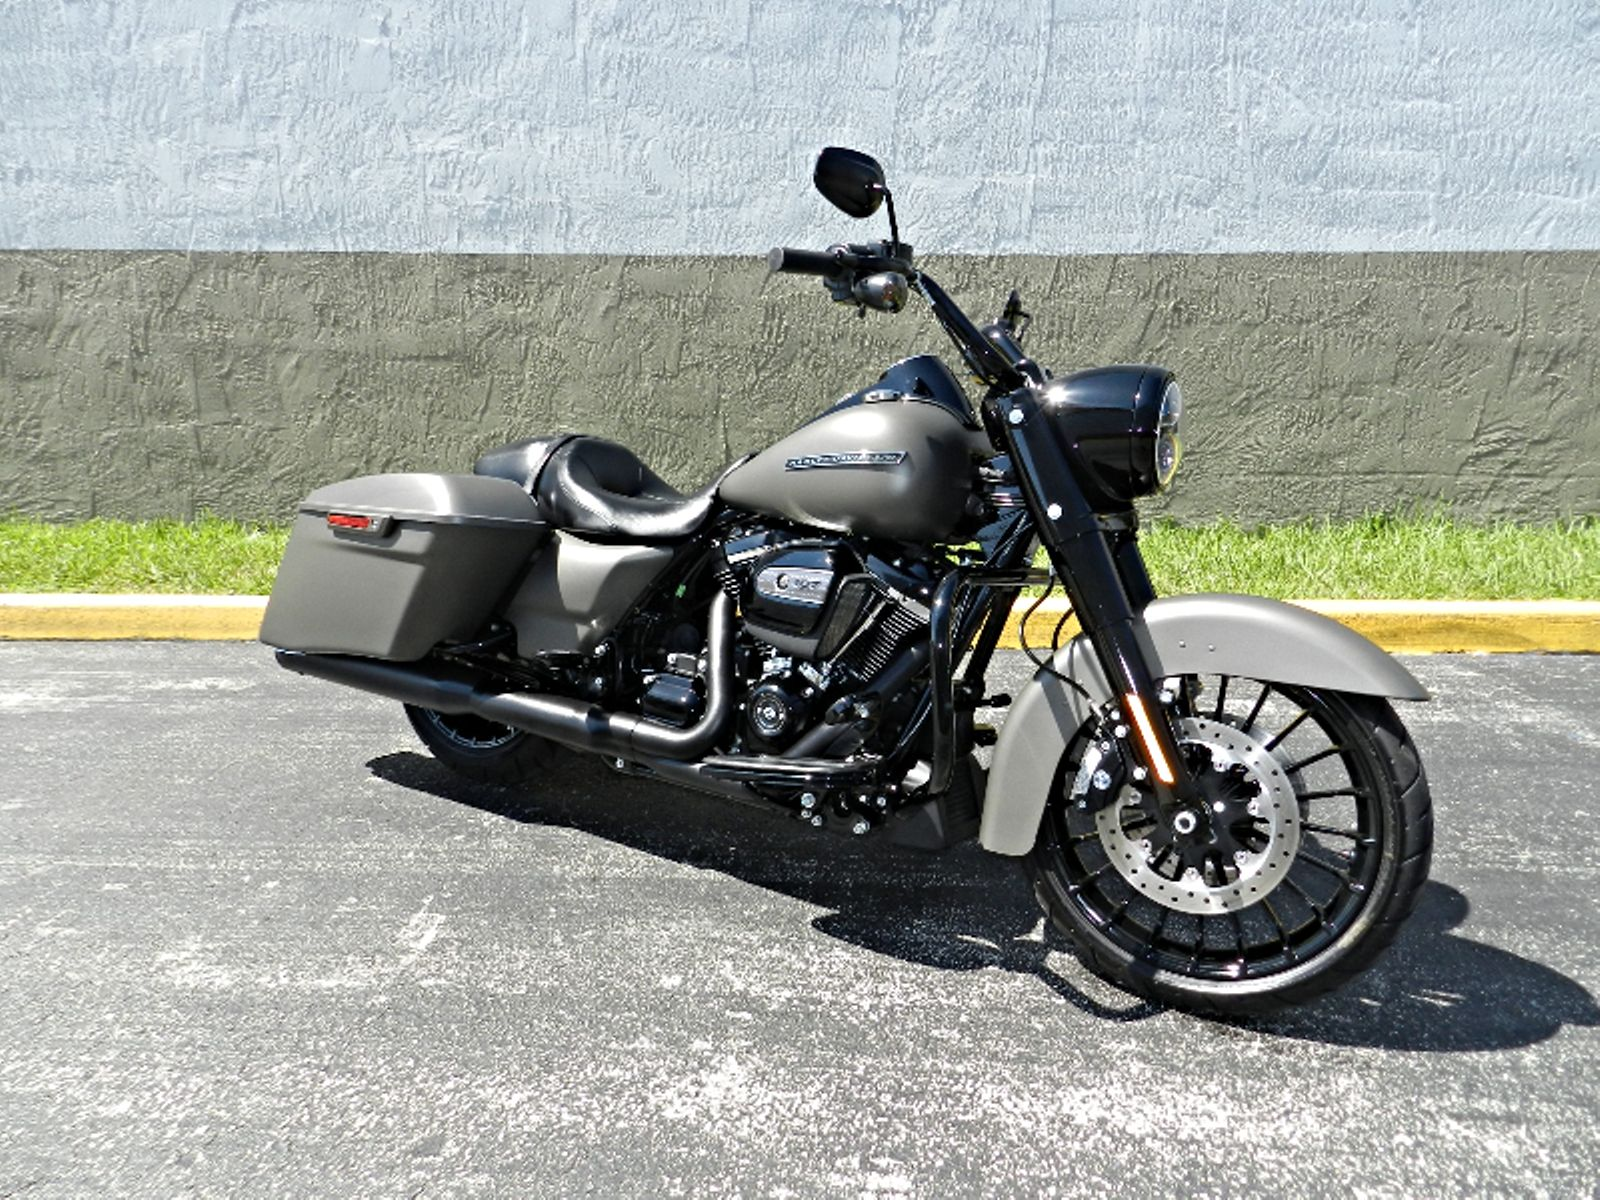 2018 harley davidson road king special flhrxs stage 1 vance hines same as new city florida mc cycles. Black Bedroom Furniture Sets. Home Design Ideas